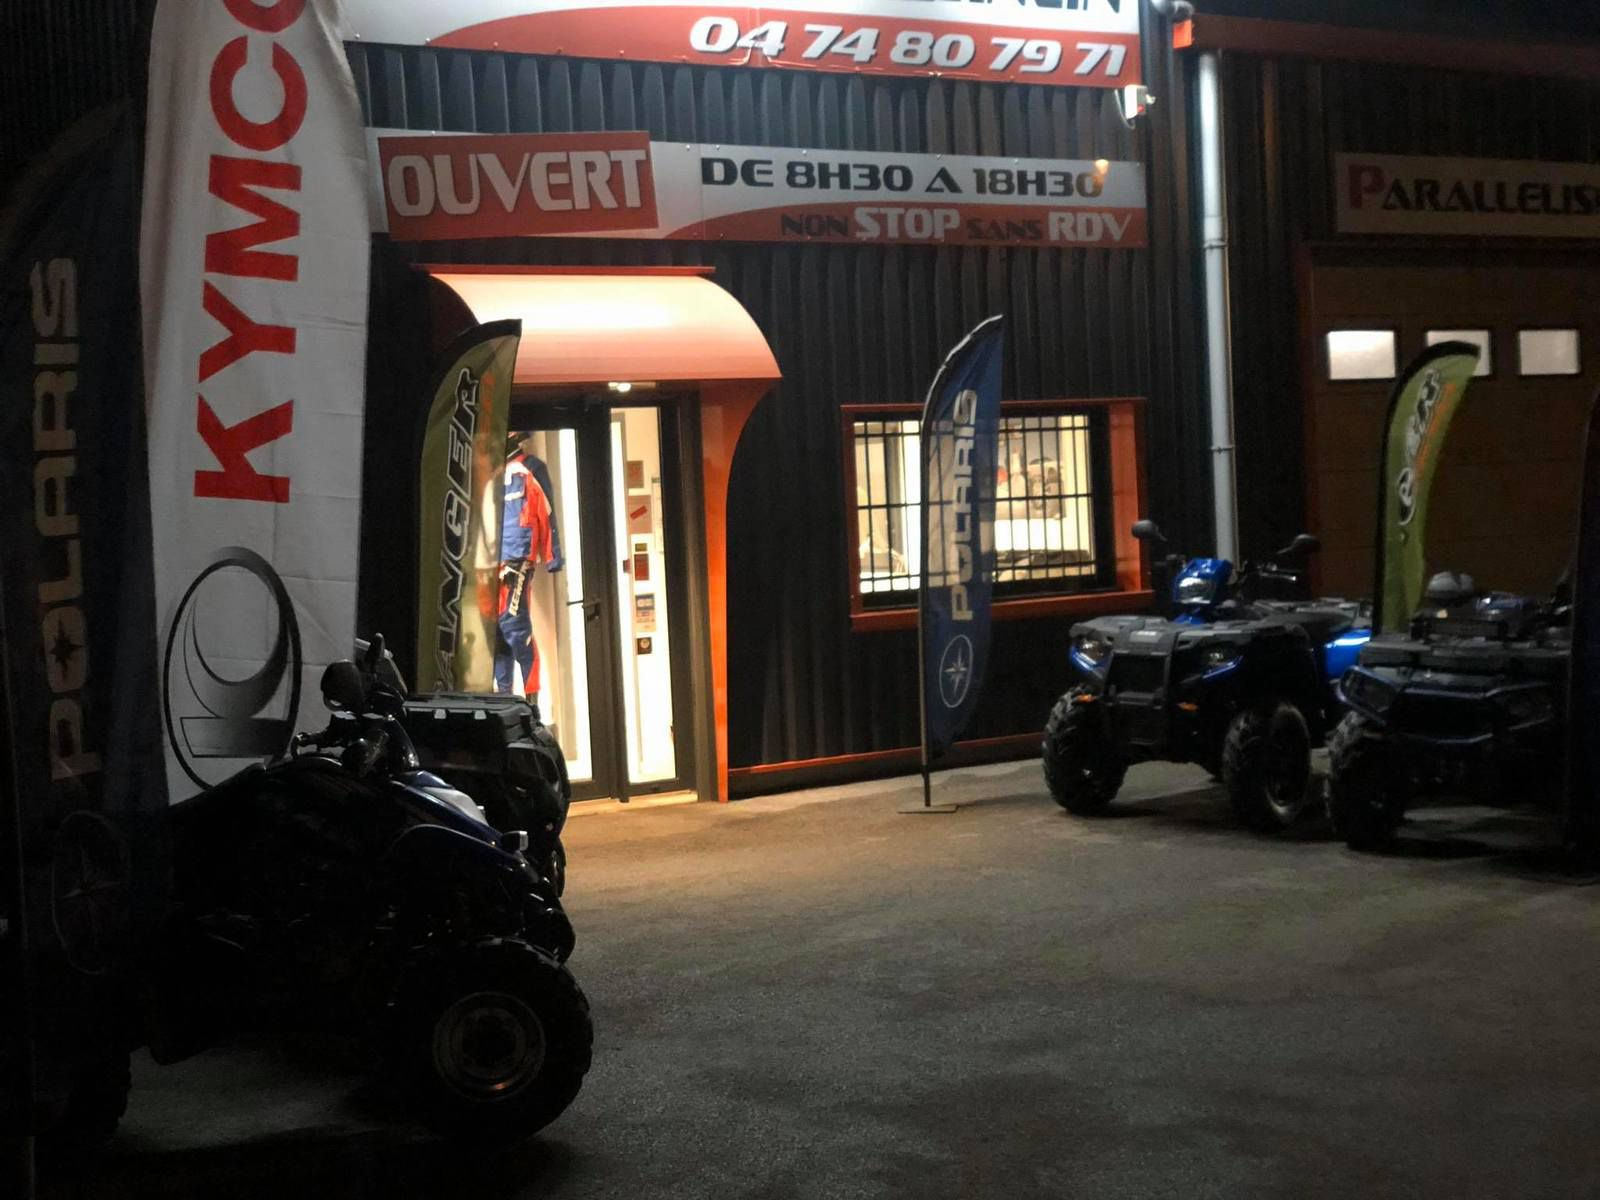 quad38; quad 38; concession quad38 ; rando quad isere; concession ymaah, concession polaris , oncession kymco